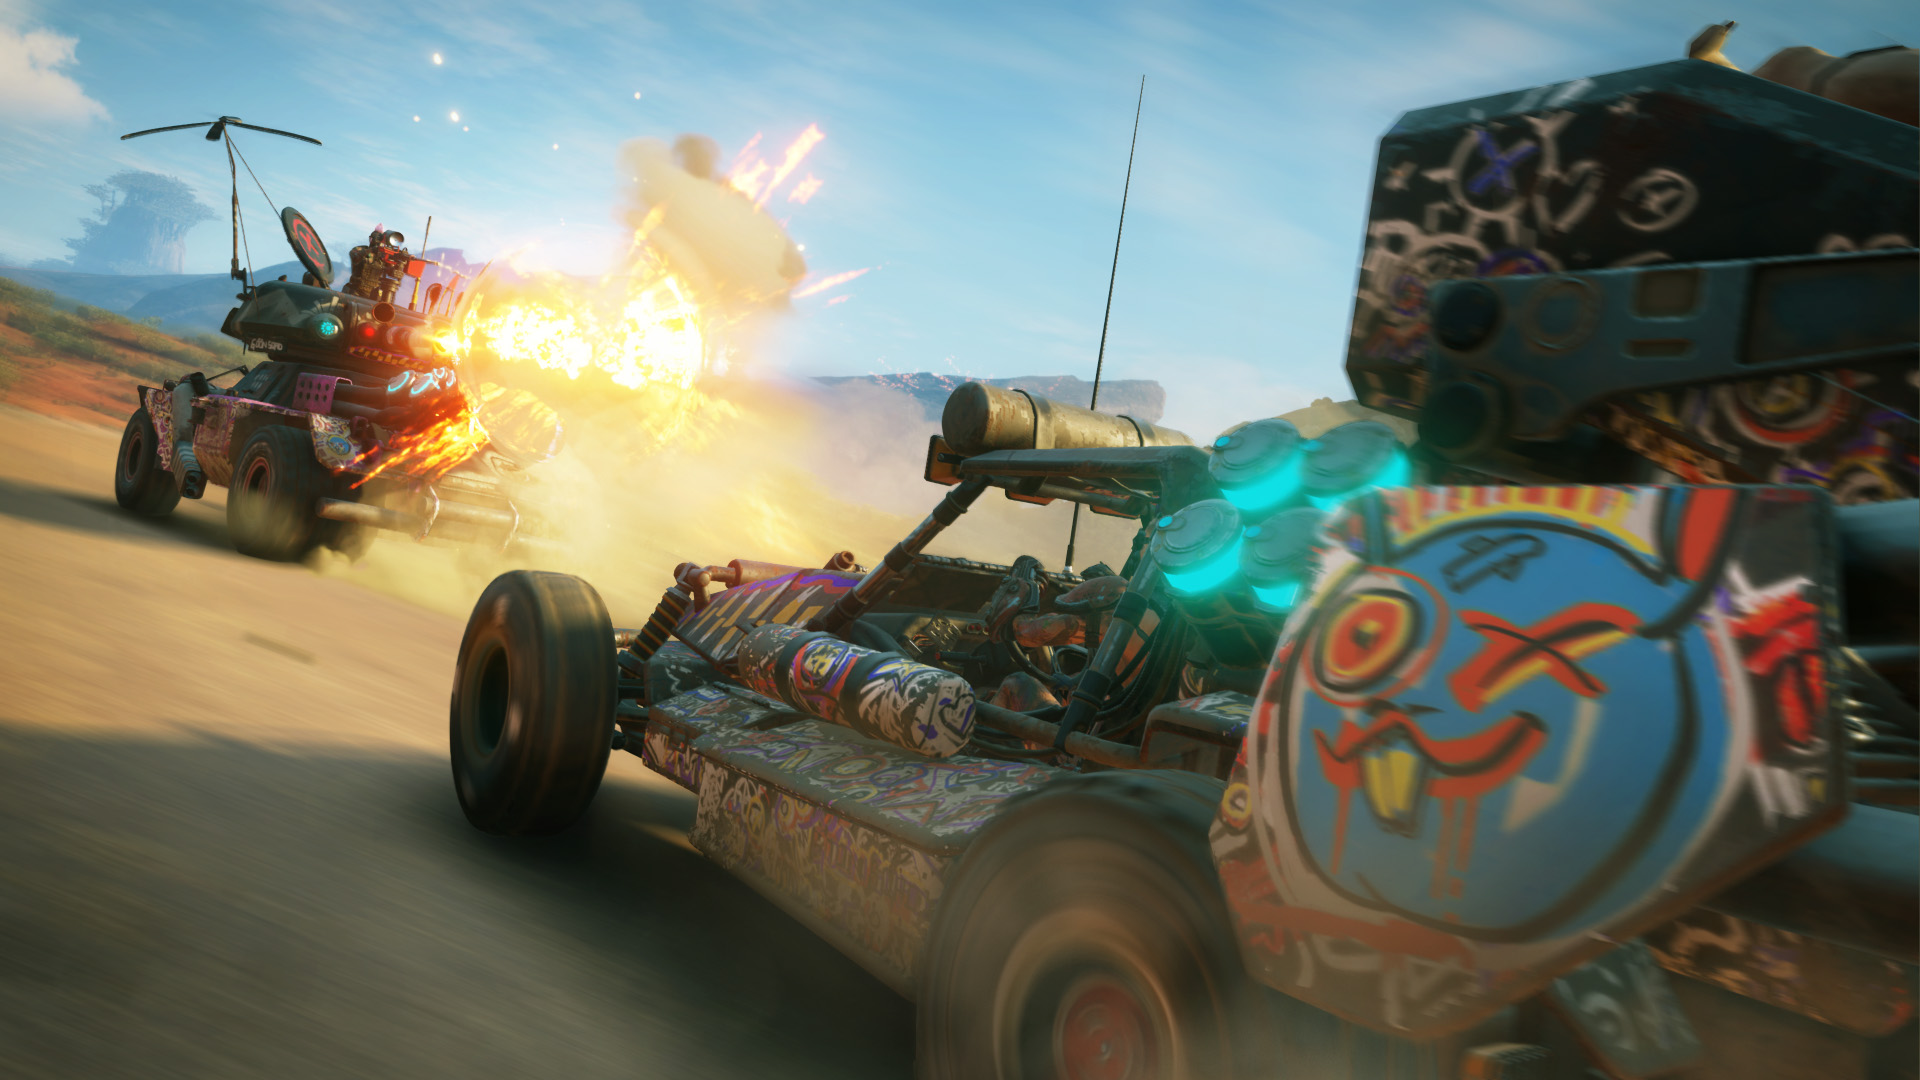 RAGE 2 Gameplay Screenshot 1. Bild: Bethesda